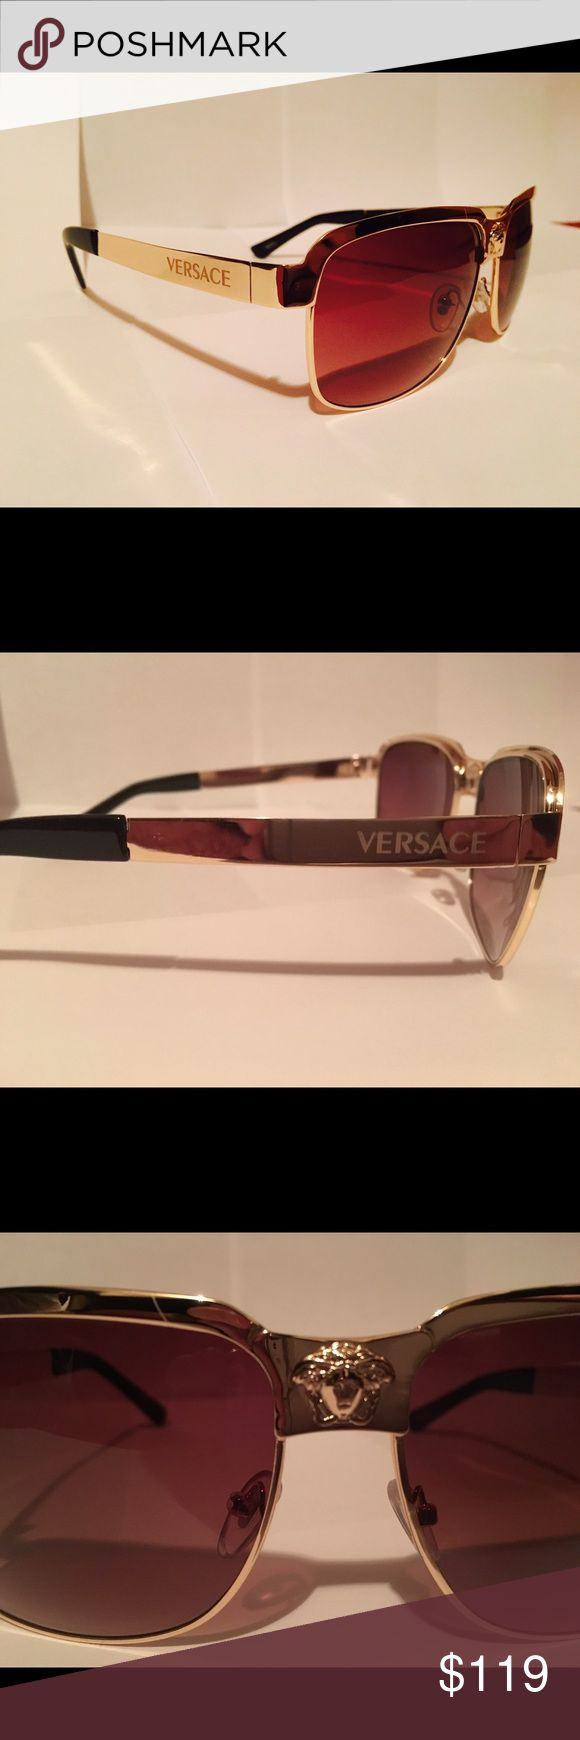 Mens Versace Sunglasses Brand new! Gold accent frames, offers accepted. Versace Accessories Sunglasses